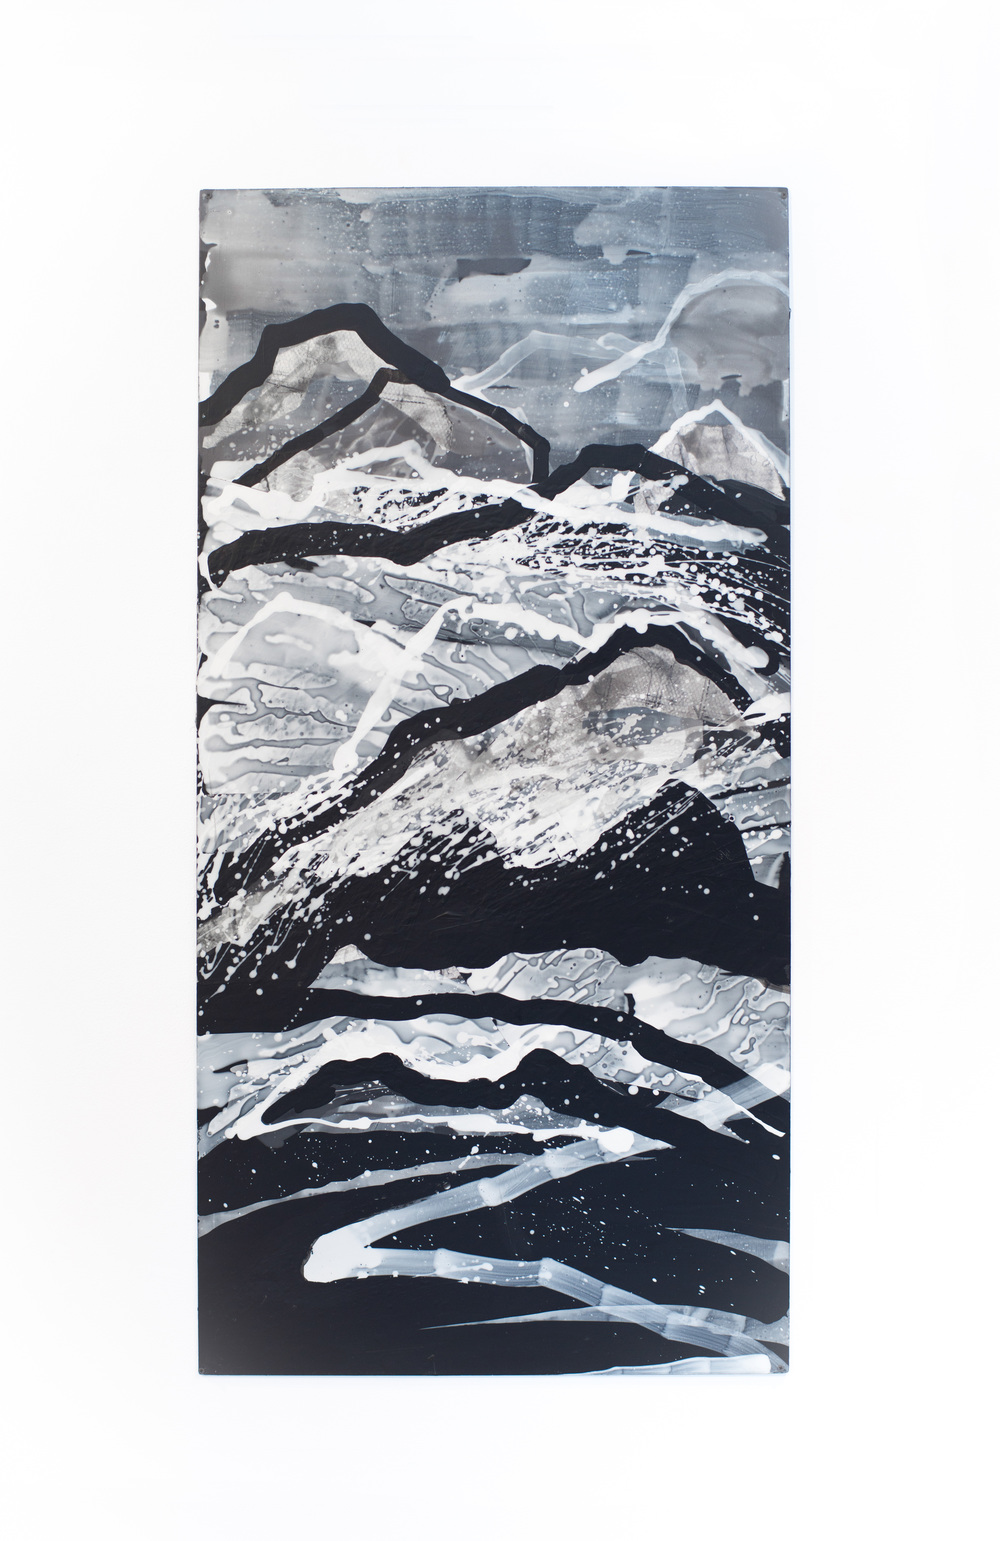 Nancy Manter    Endless Landscape #4  , 2012   Collage, distemper on aluminum panel  60 x 40 inches